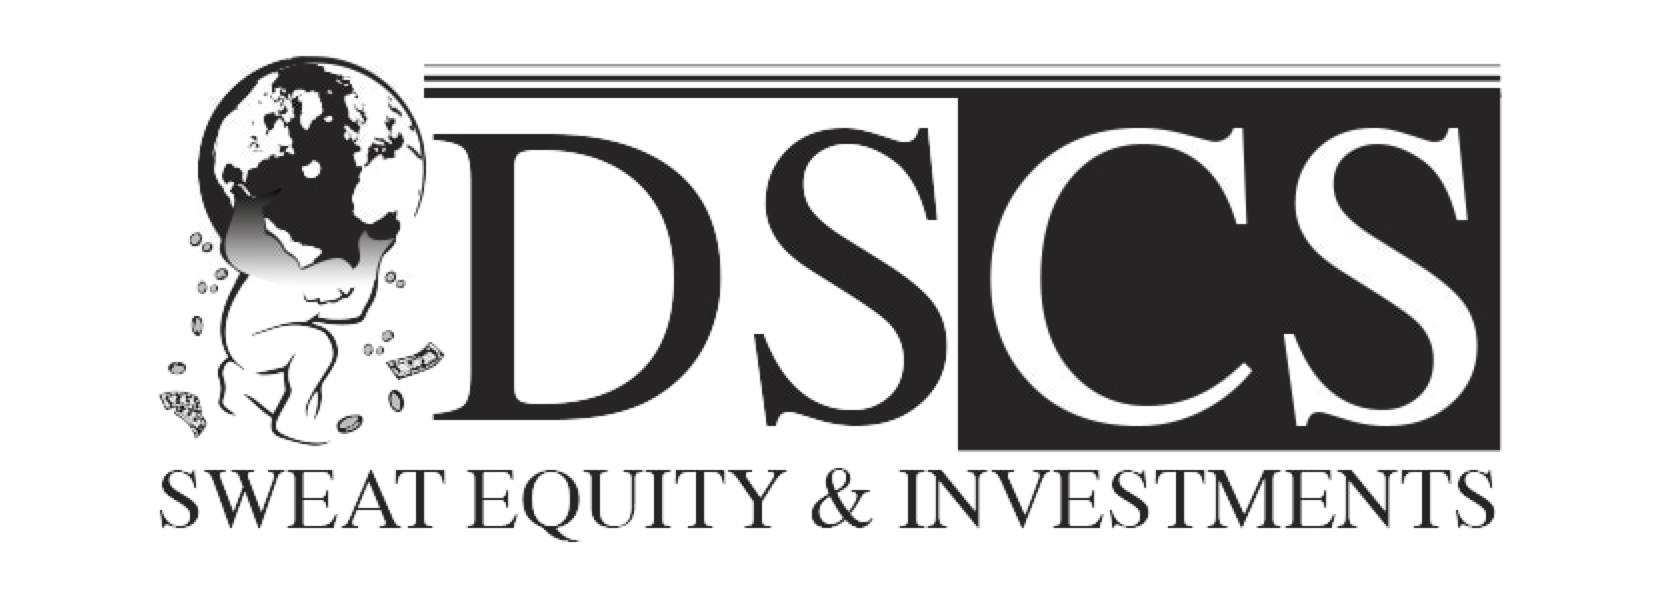 DSCS was founded with research sites in mind. Since our inception in 2013 we have scratched our own itch when it comes to implementing an effective business development and contract and budget strategy to give our clients and partners a competitive advantage in the marketplace.